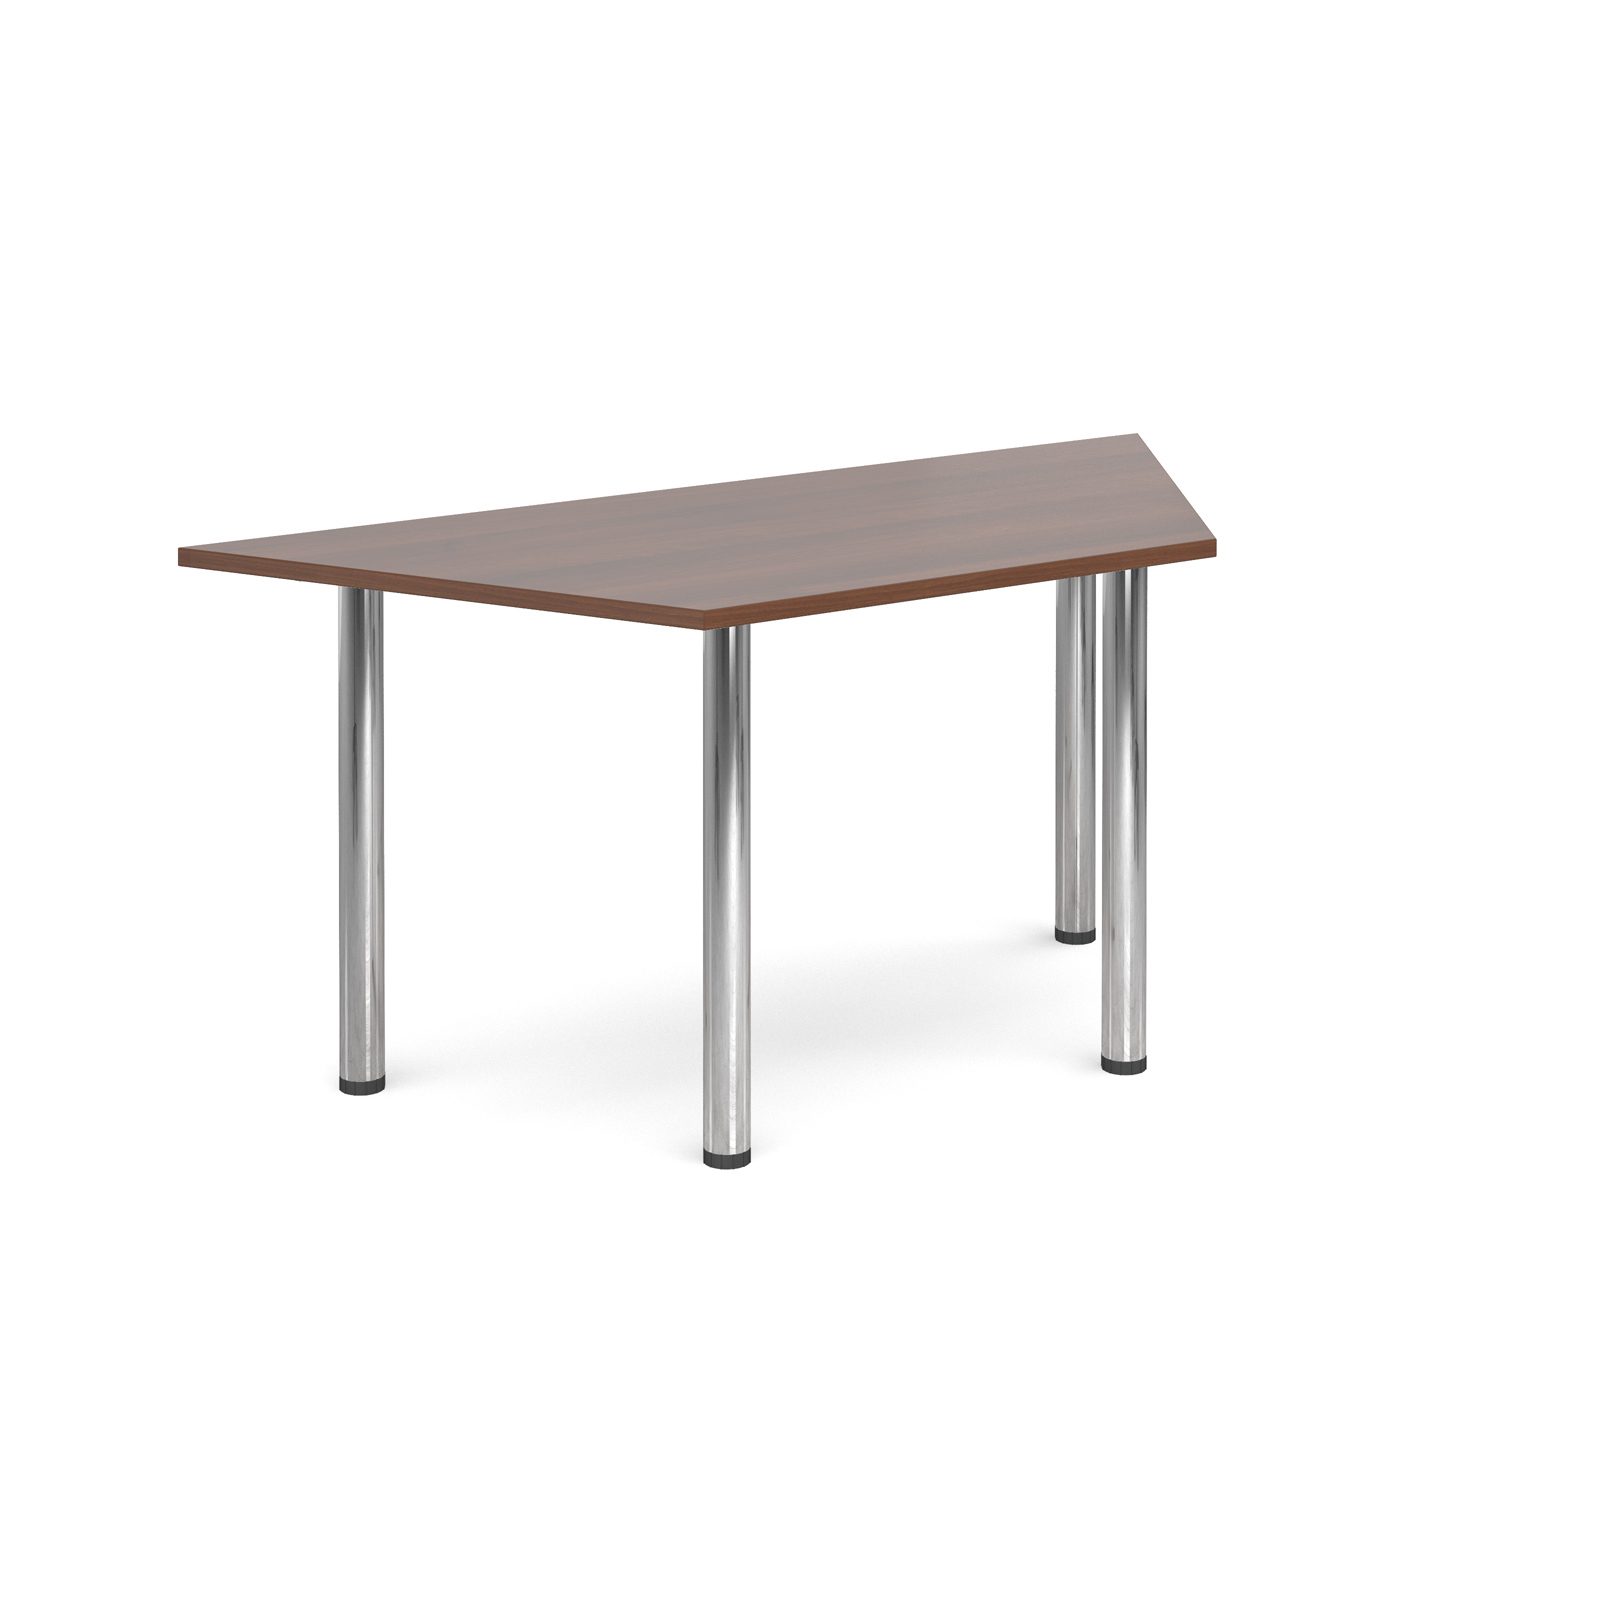 Trapezoidal deluxe chrome radial leg table 1600mm x 800mm - walnut